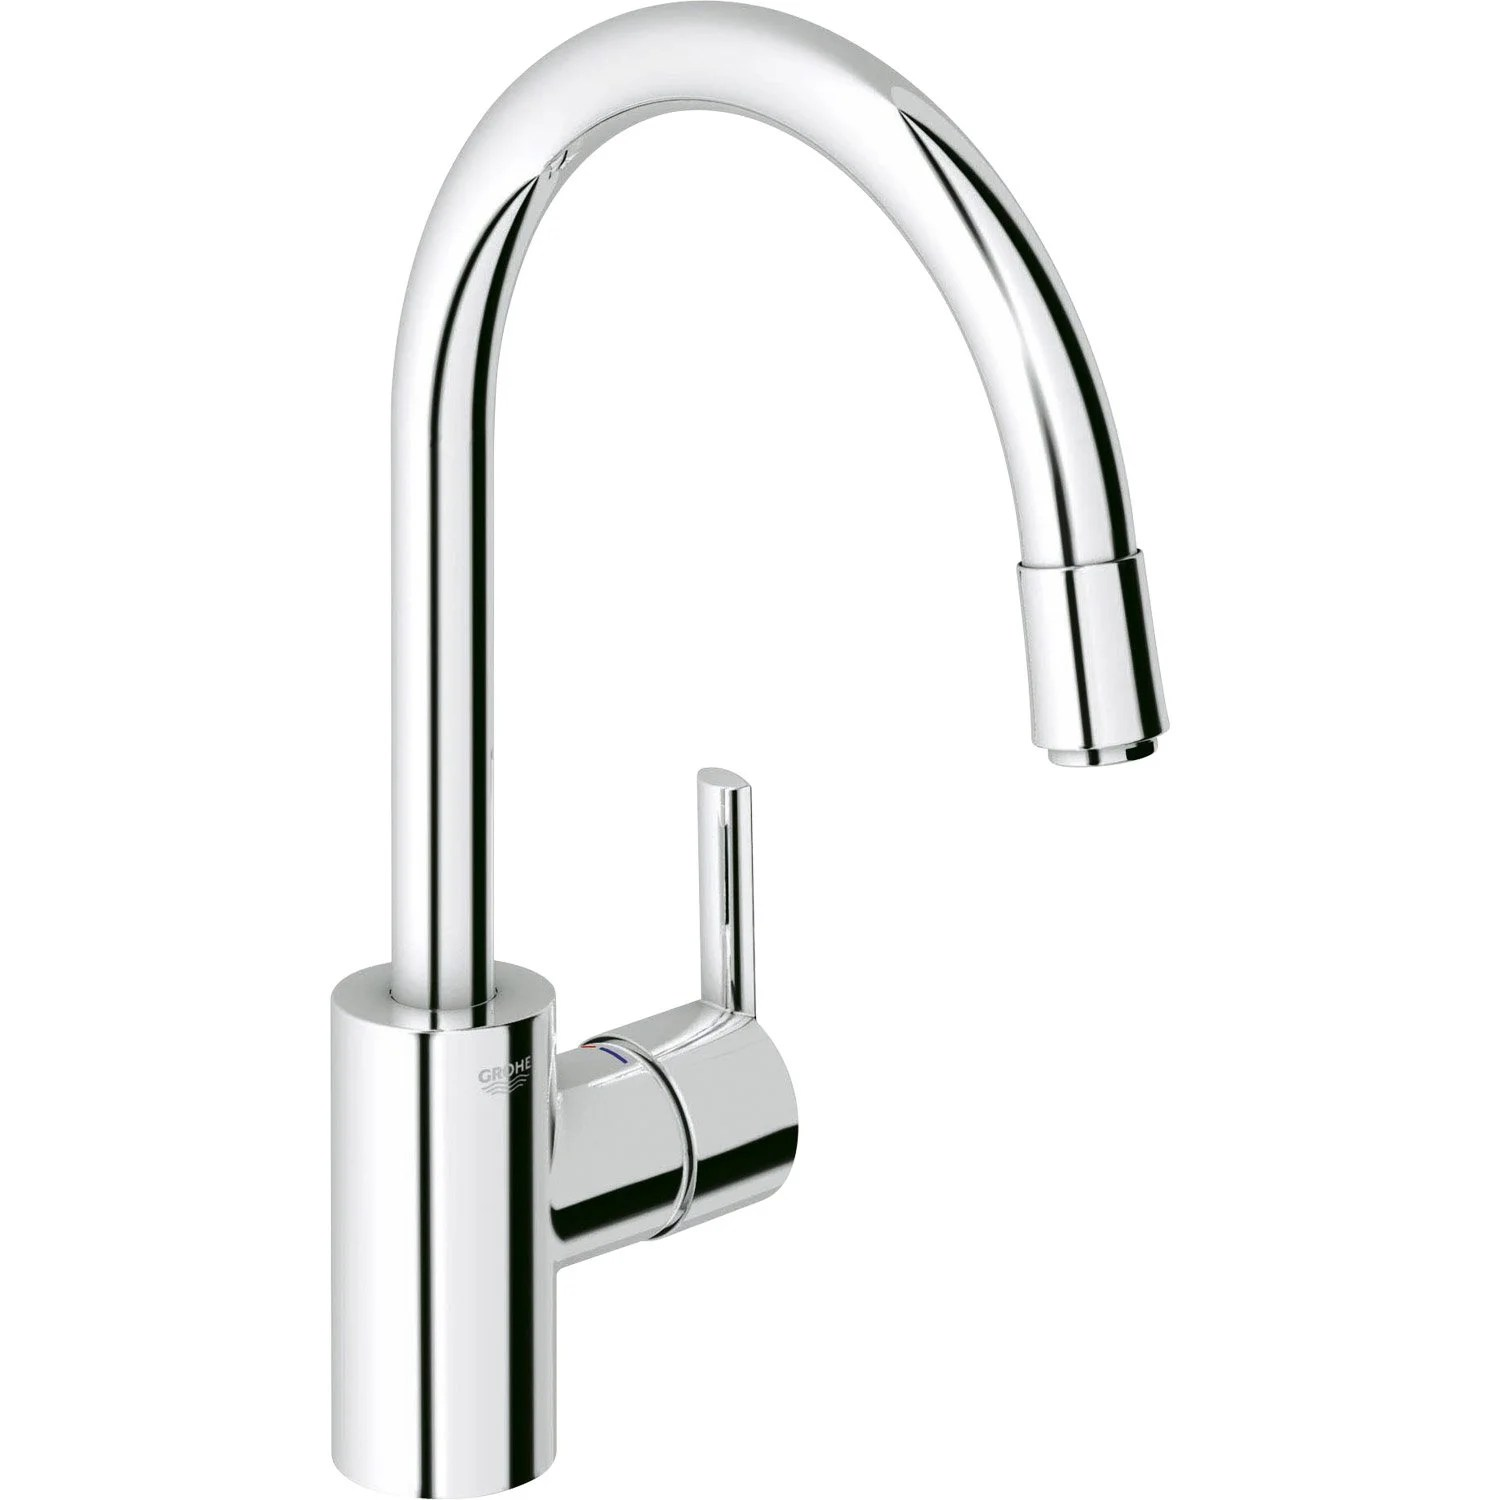 Robinet Cuisine Grohe Robinetterie Cuisine